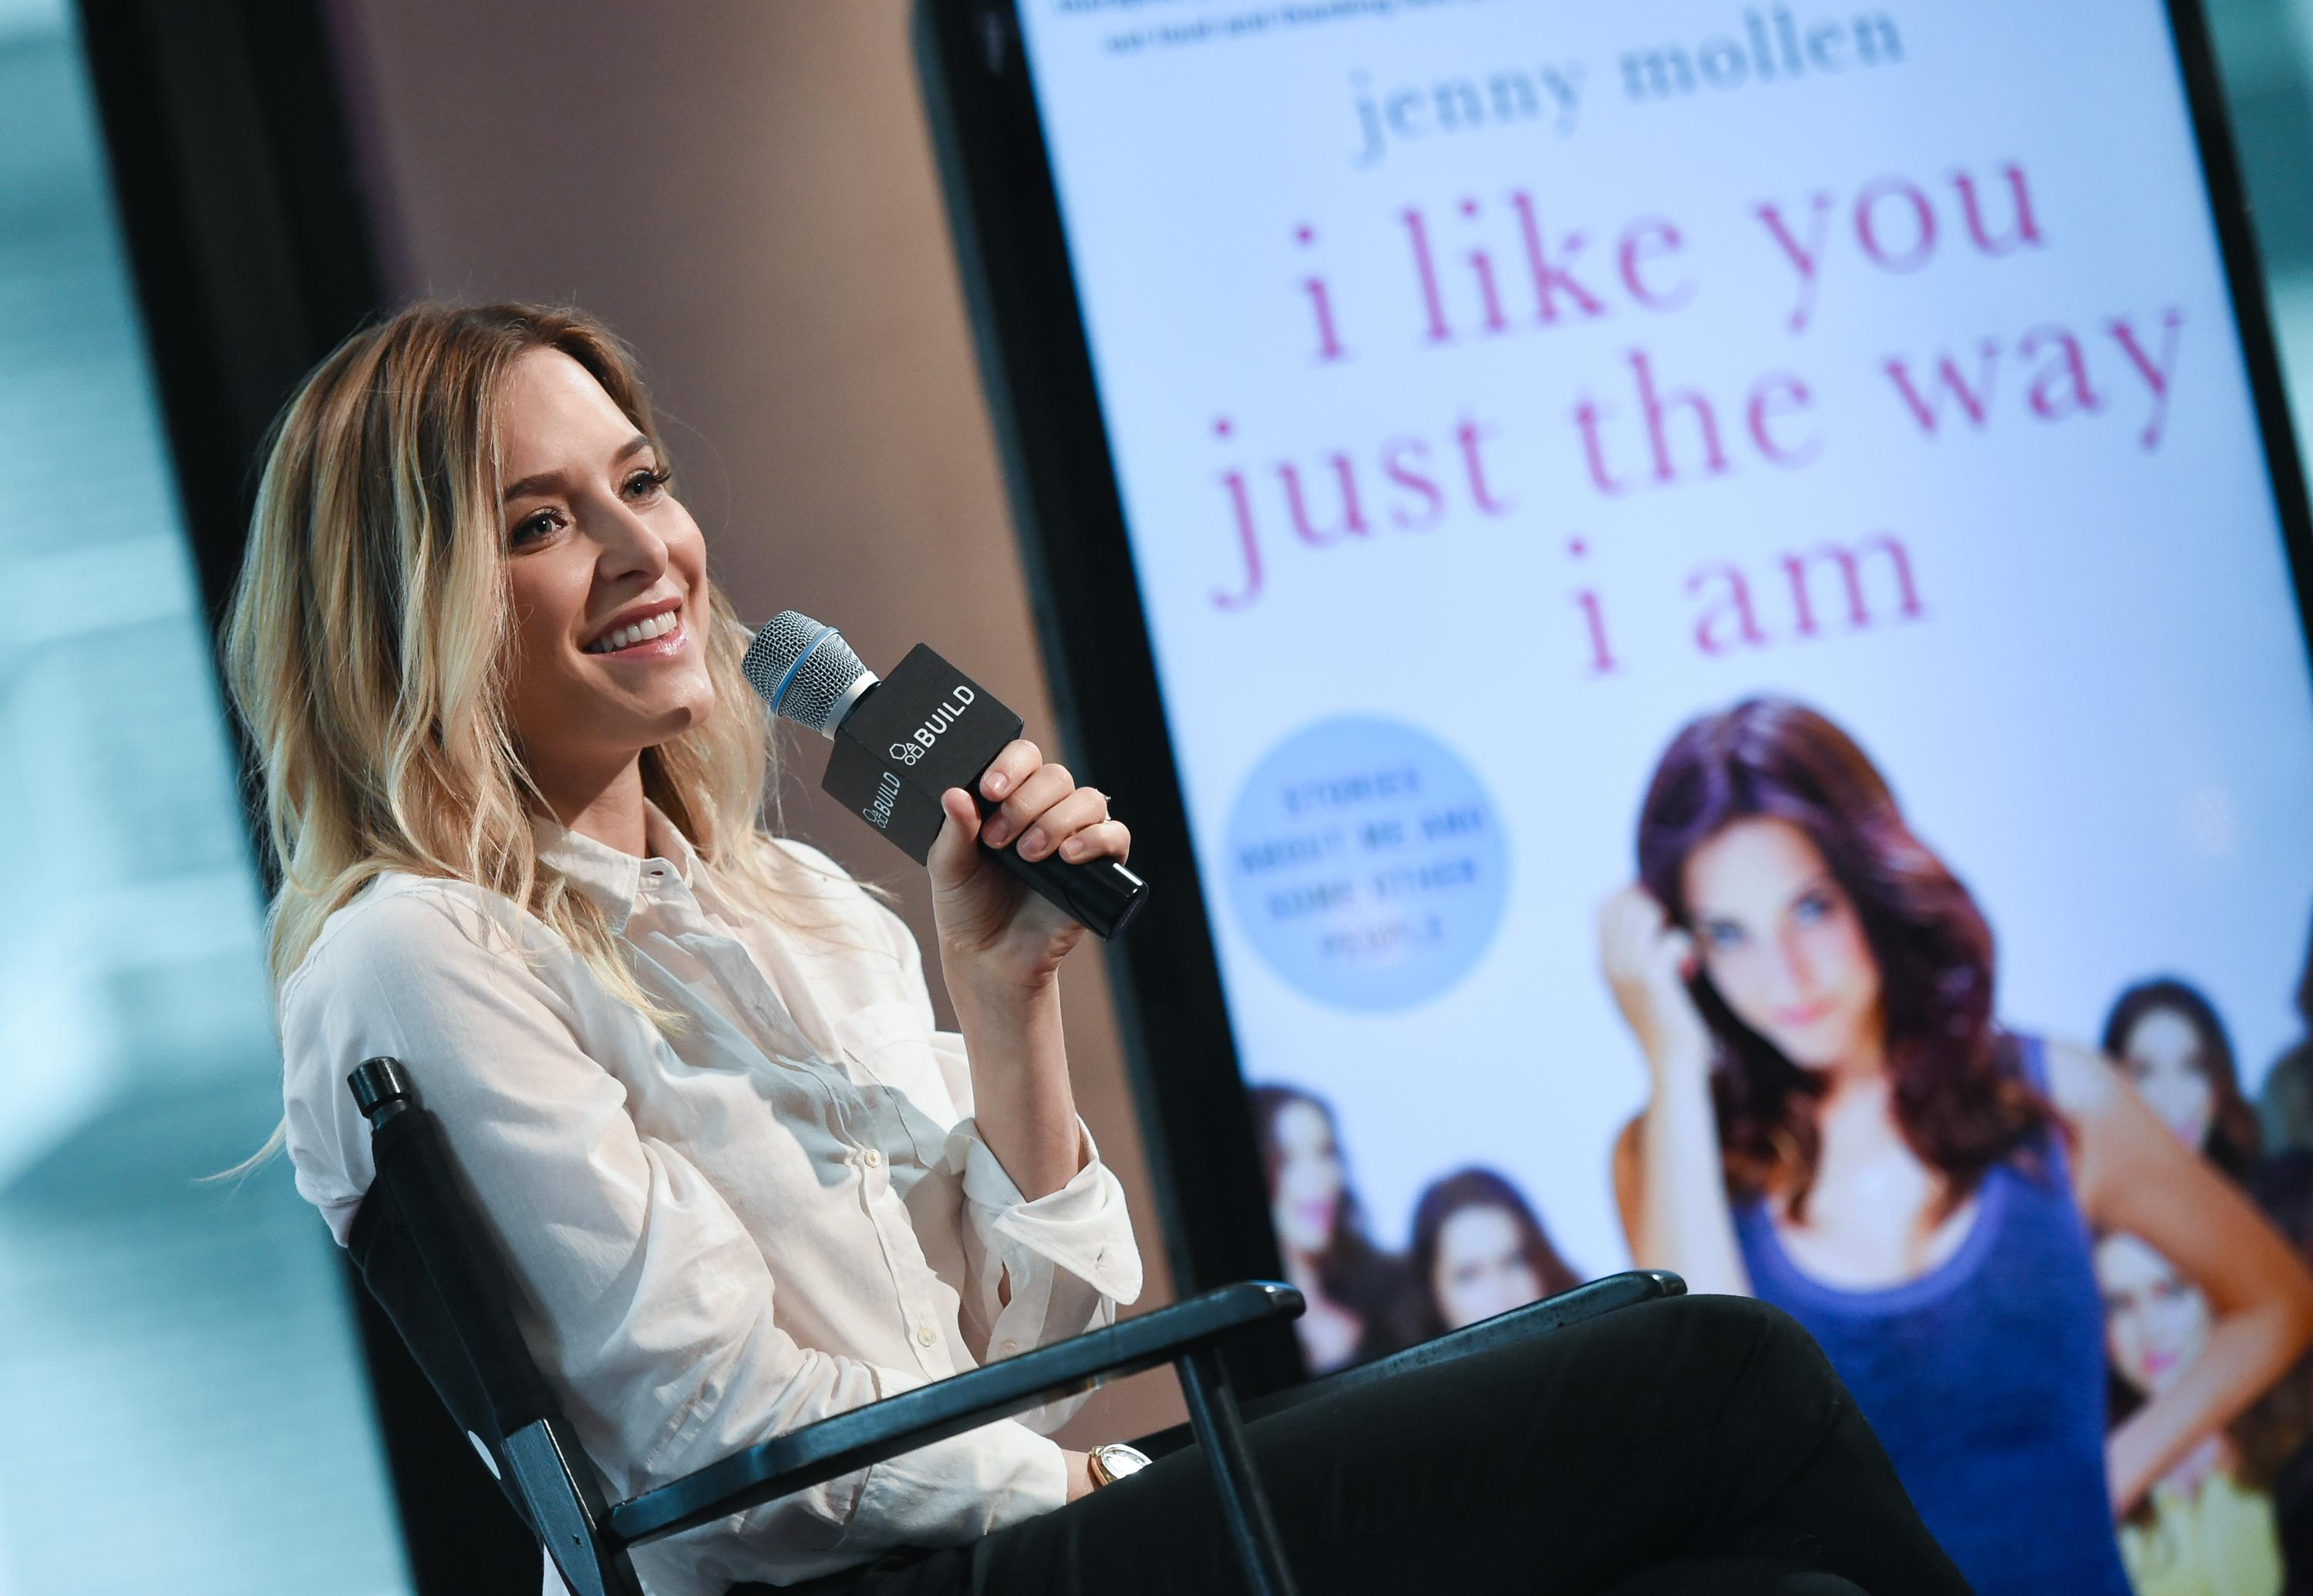 jenny mollen shares more wacky stories in her new book the